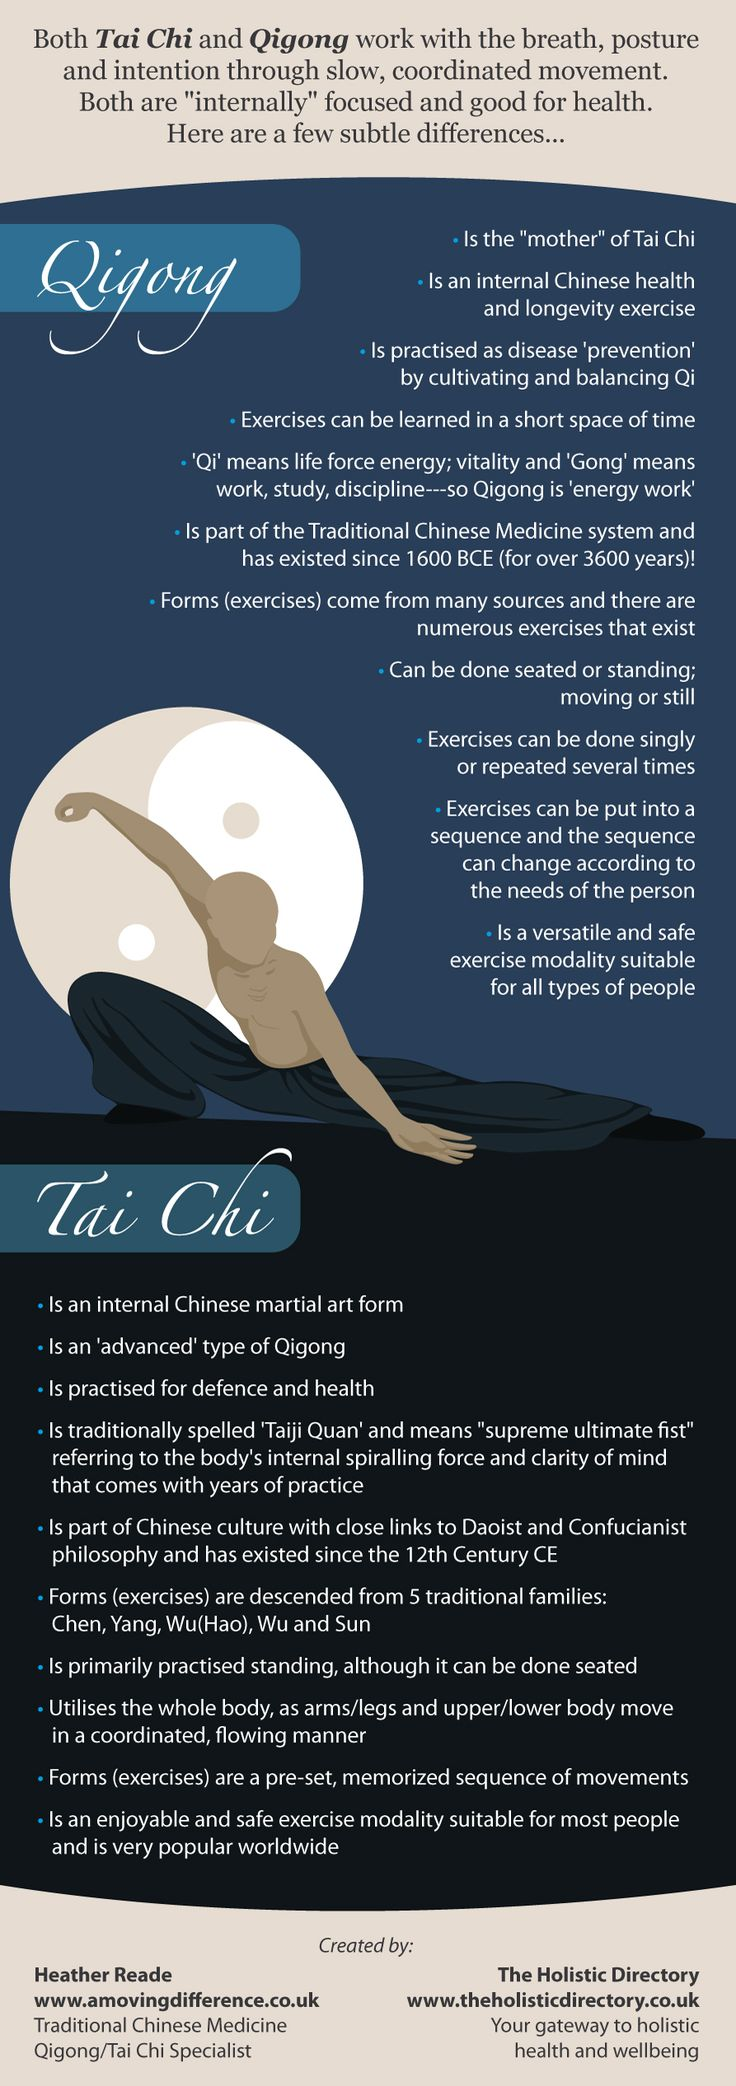 Qigong or Tai Chi… What's The Difference? | Holistic Directory